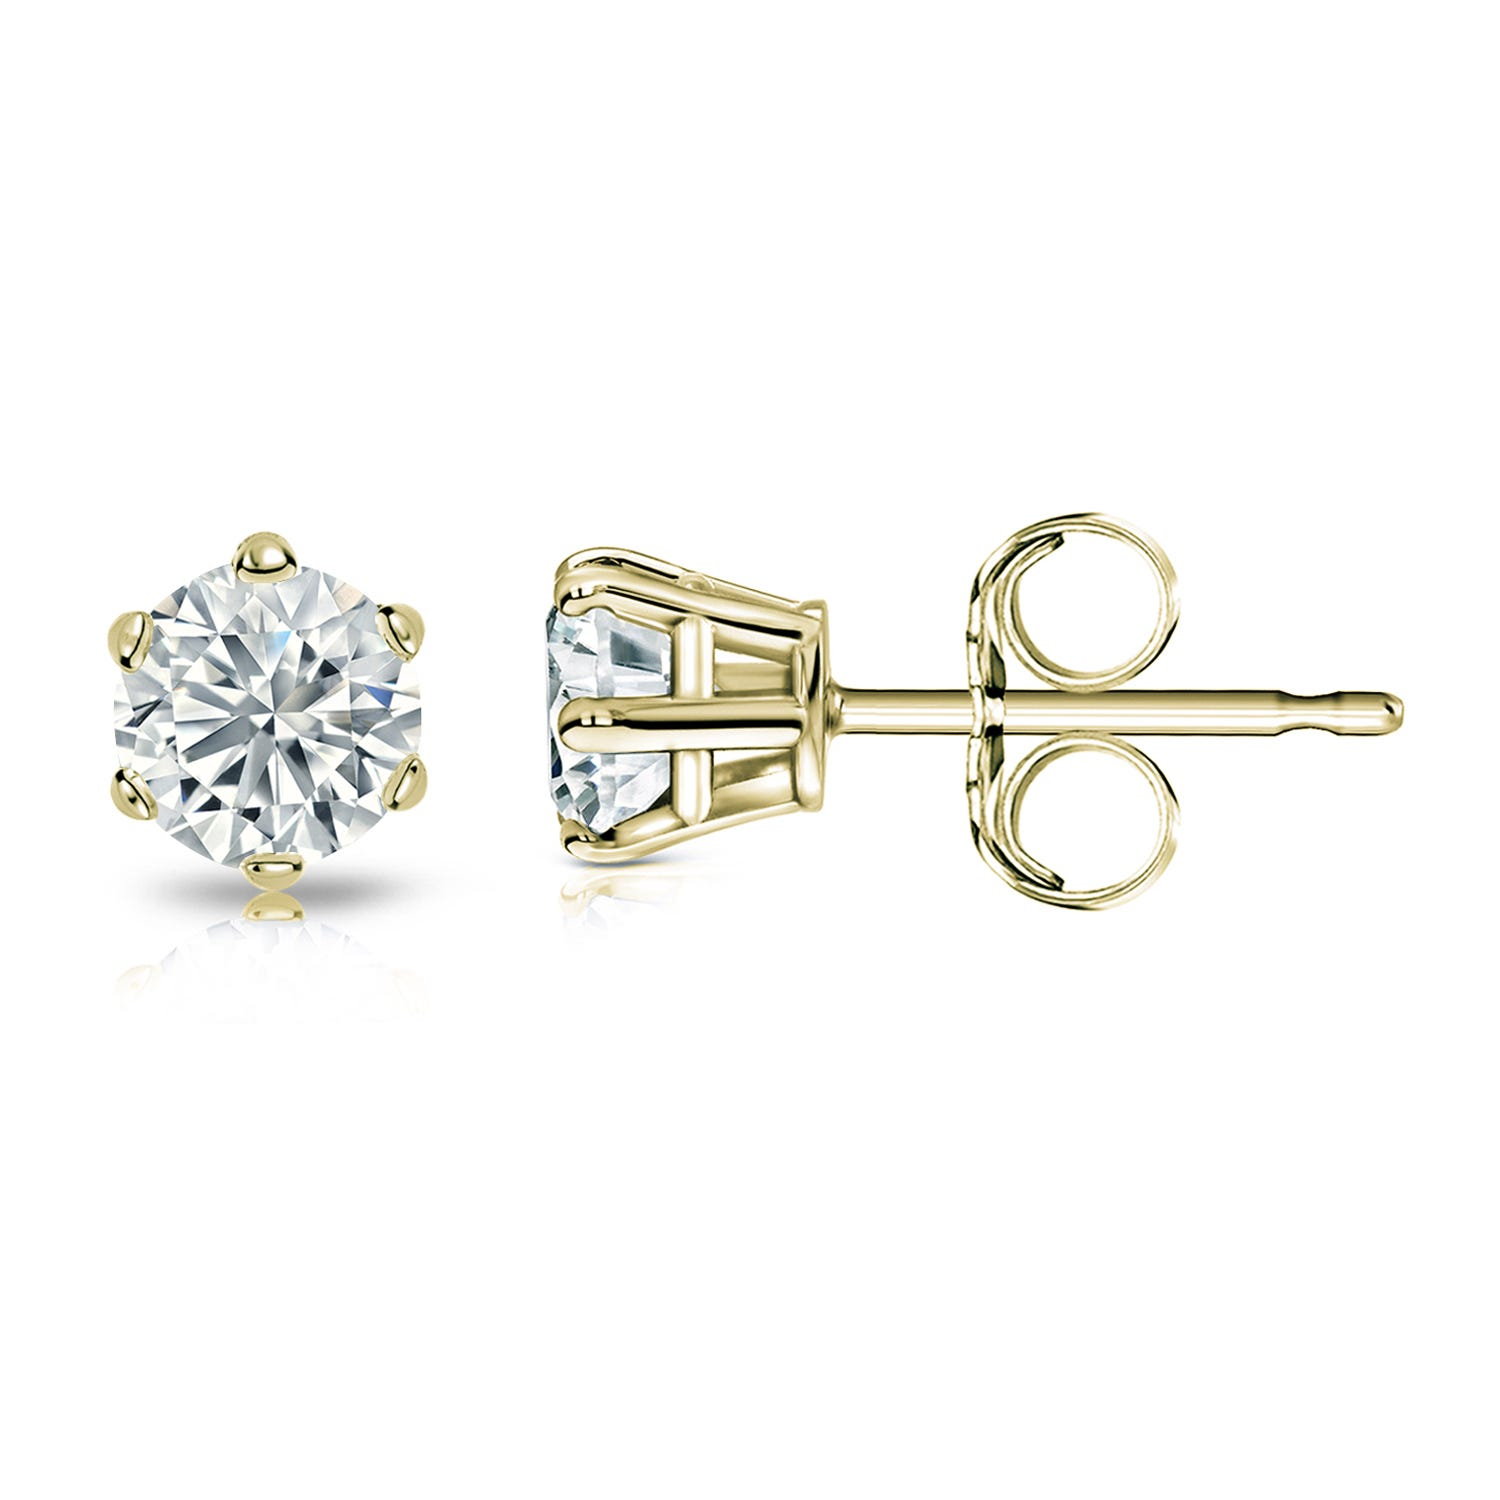 Round Diamond 5/8ctw. (IJ-I2) Solitaire Stud 6-Prong Earrings in 14K Yellow Gold